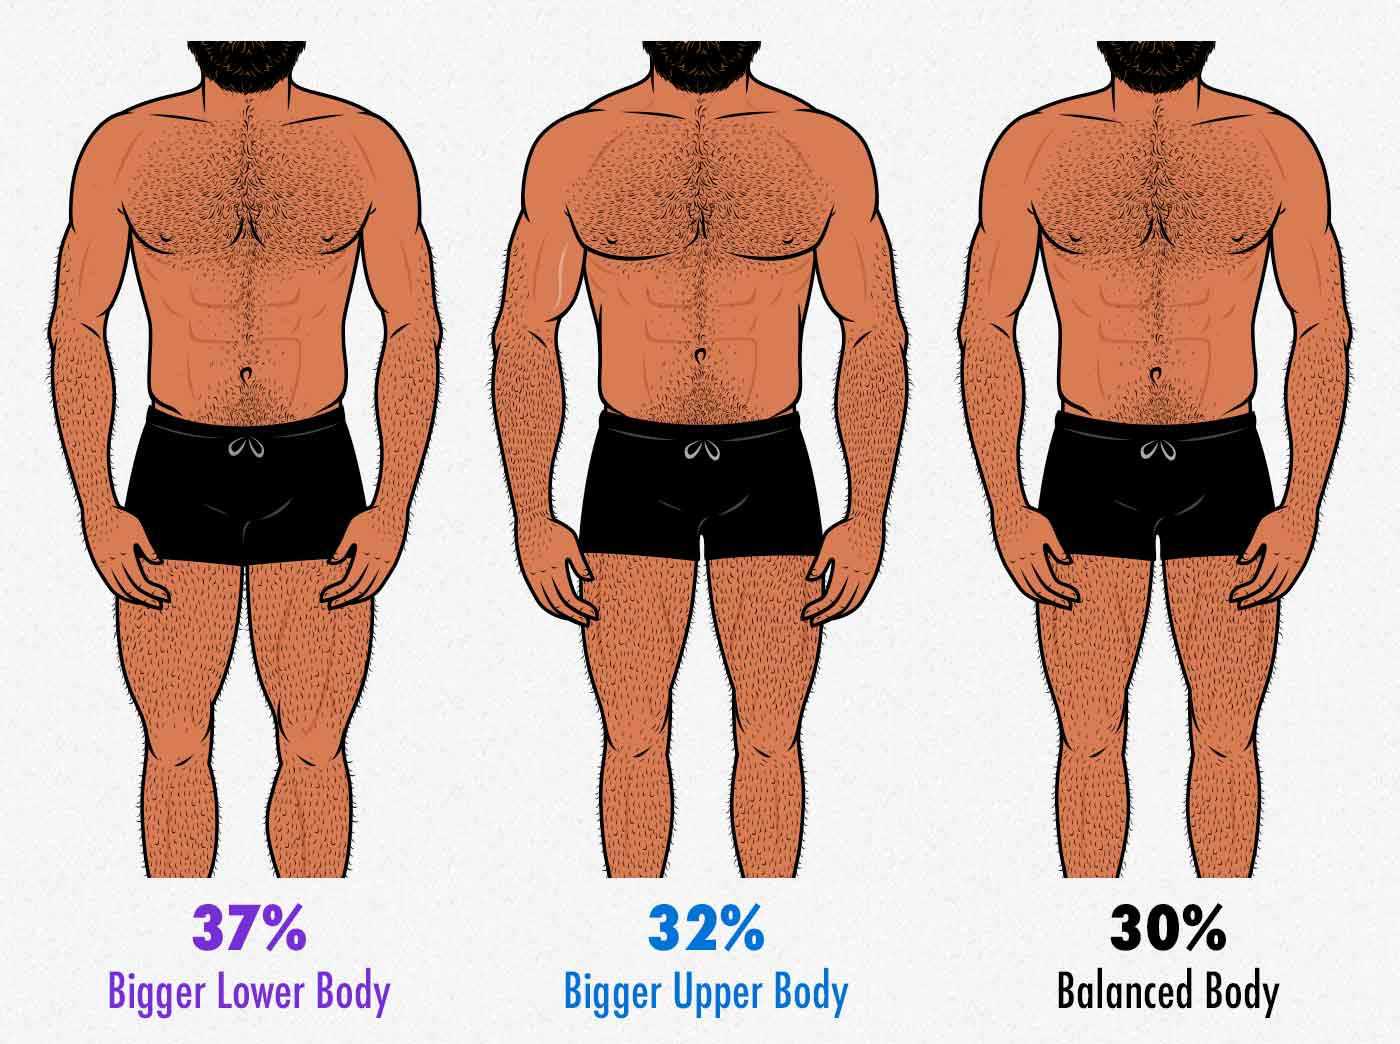 Survey results showing that gay men prefer men with more muscular lower bodies.